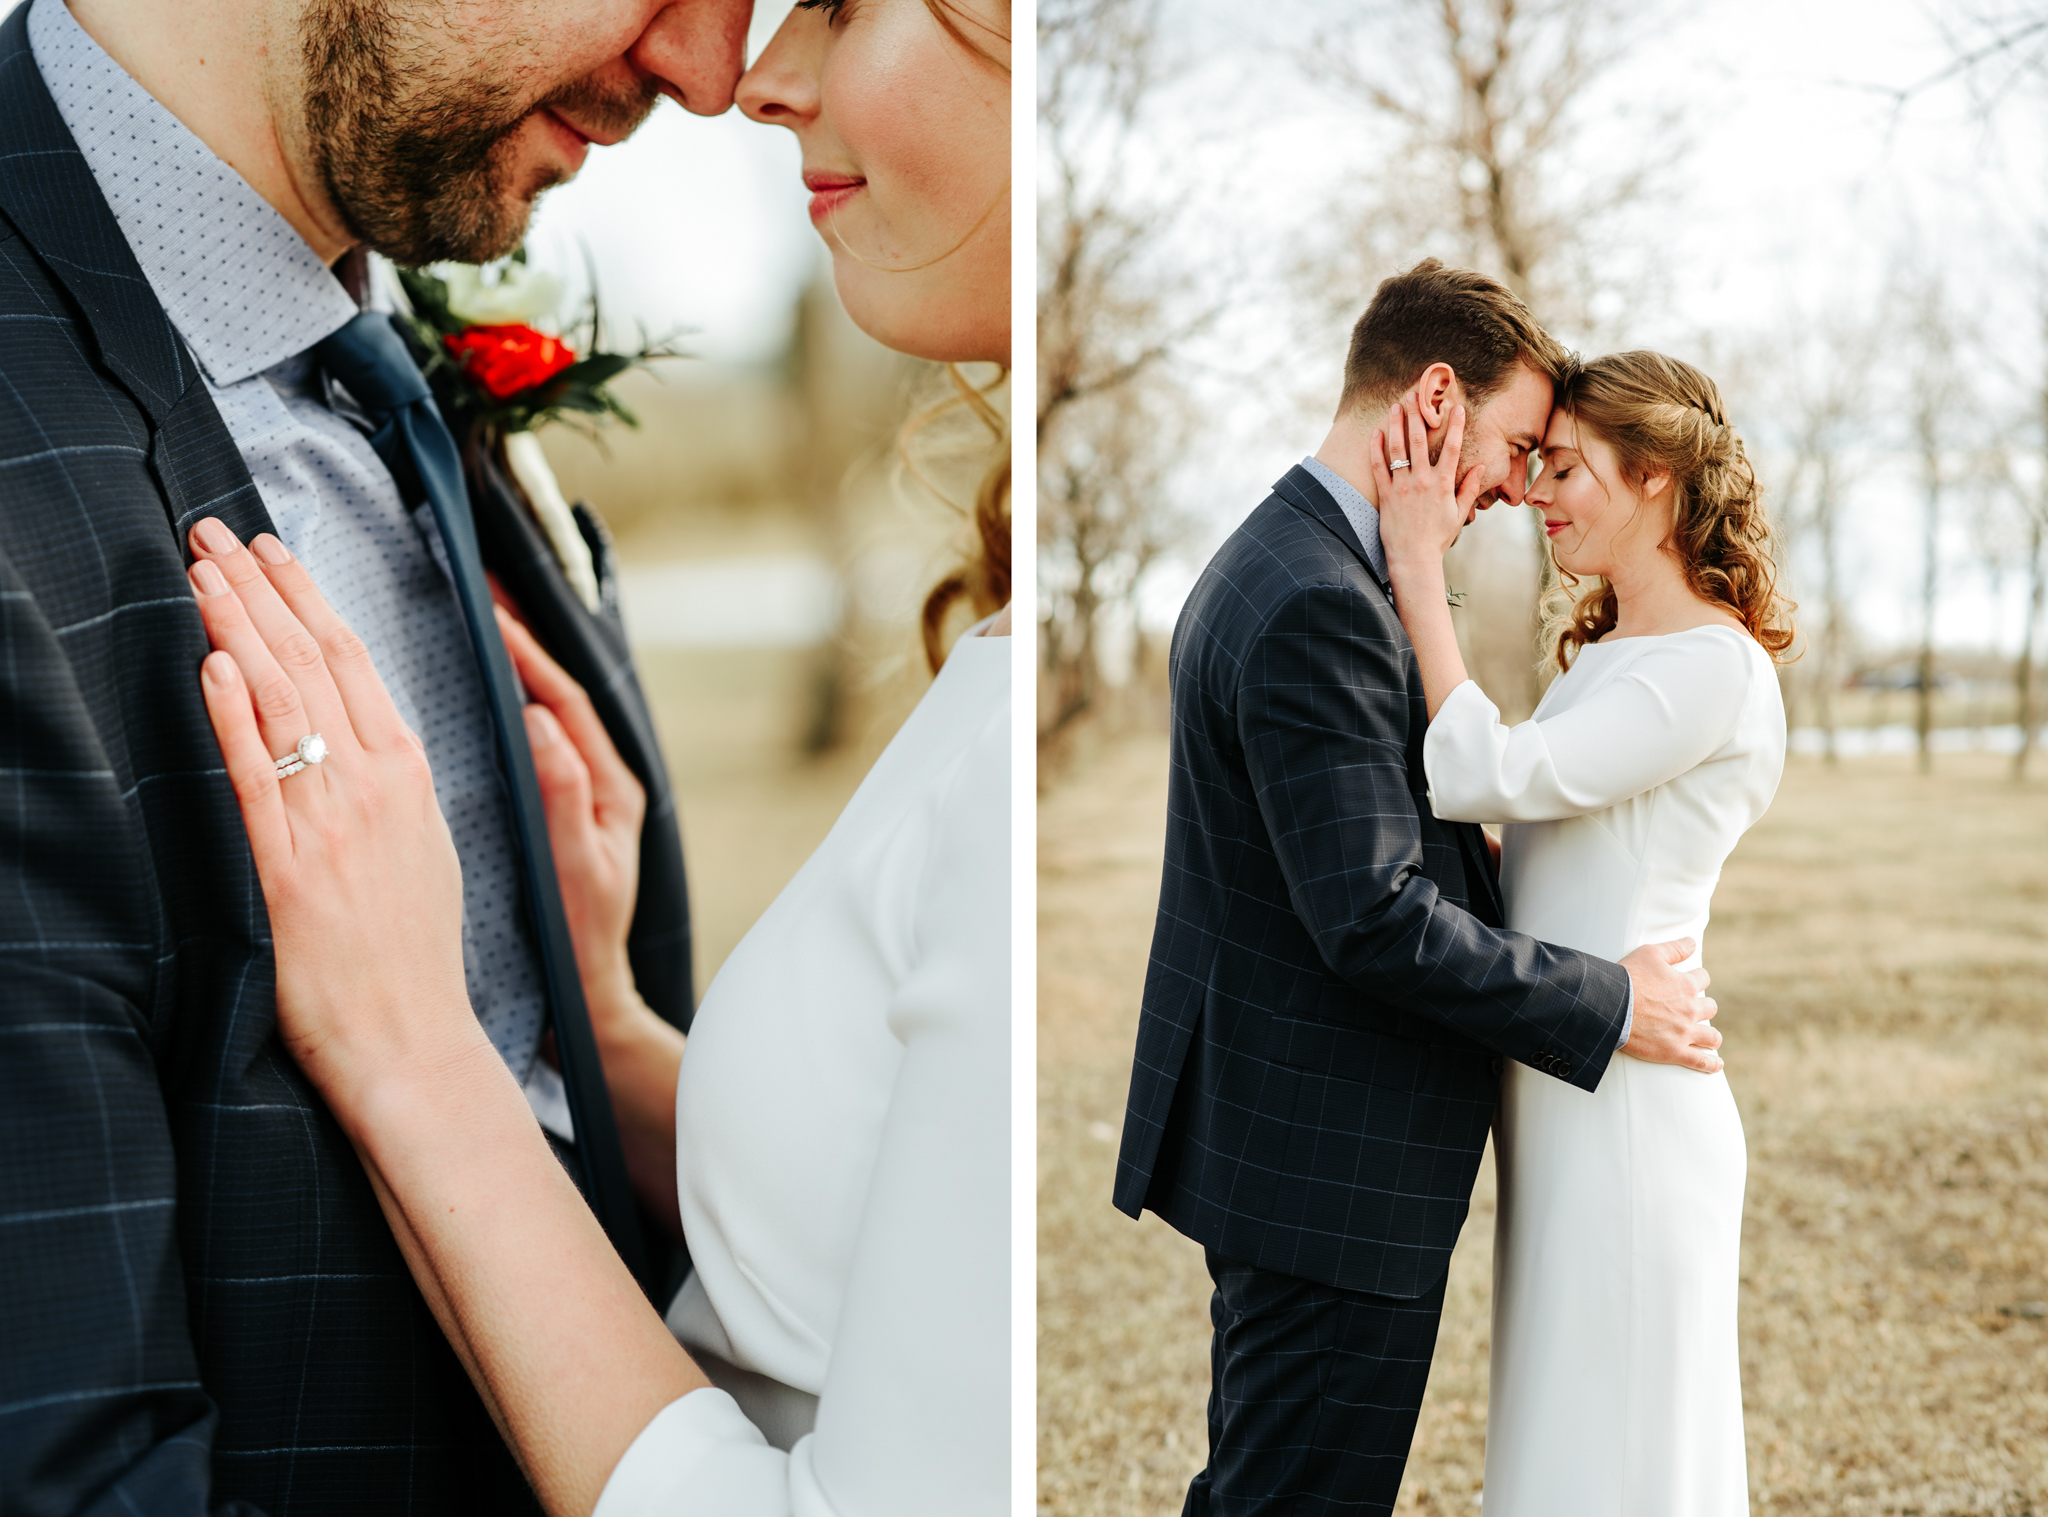 lethbridge-wedding-photographer-love-and-be-loved-photography-kris-amy-paradise-canyon-image-picture-photo-41.jpg